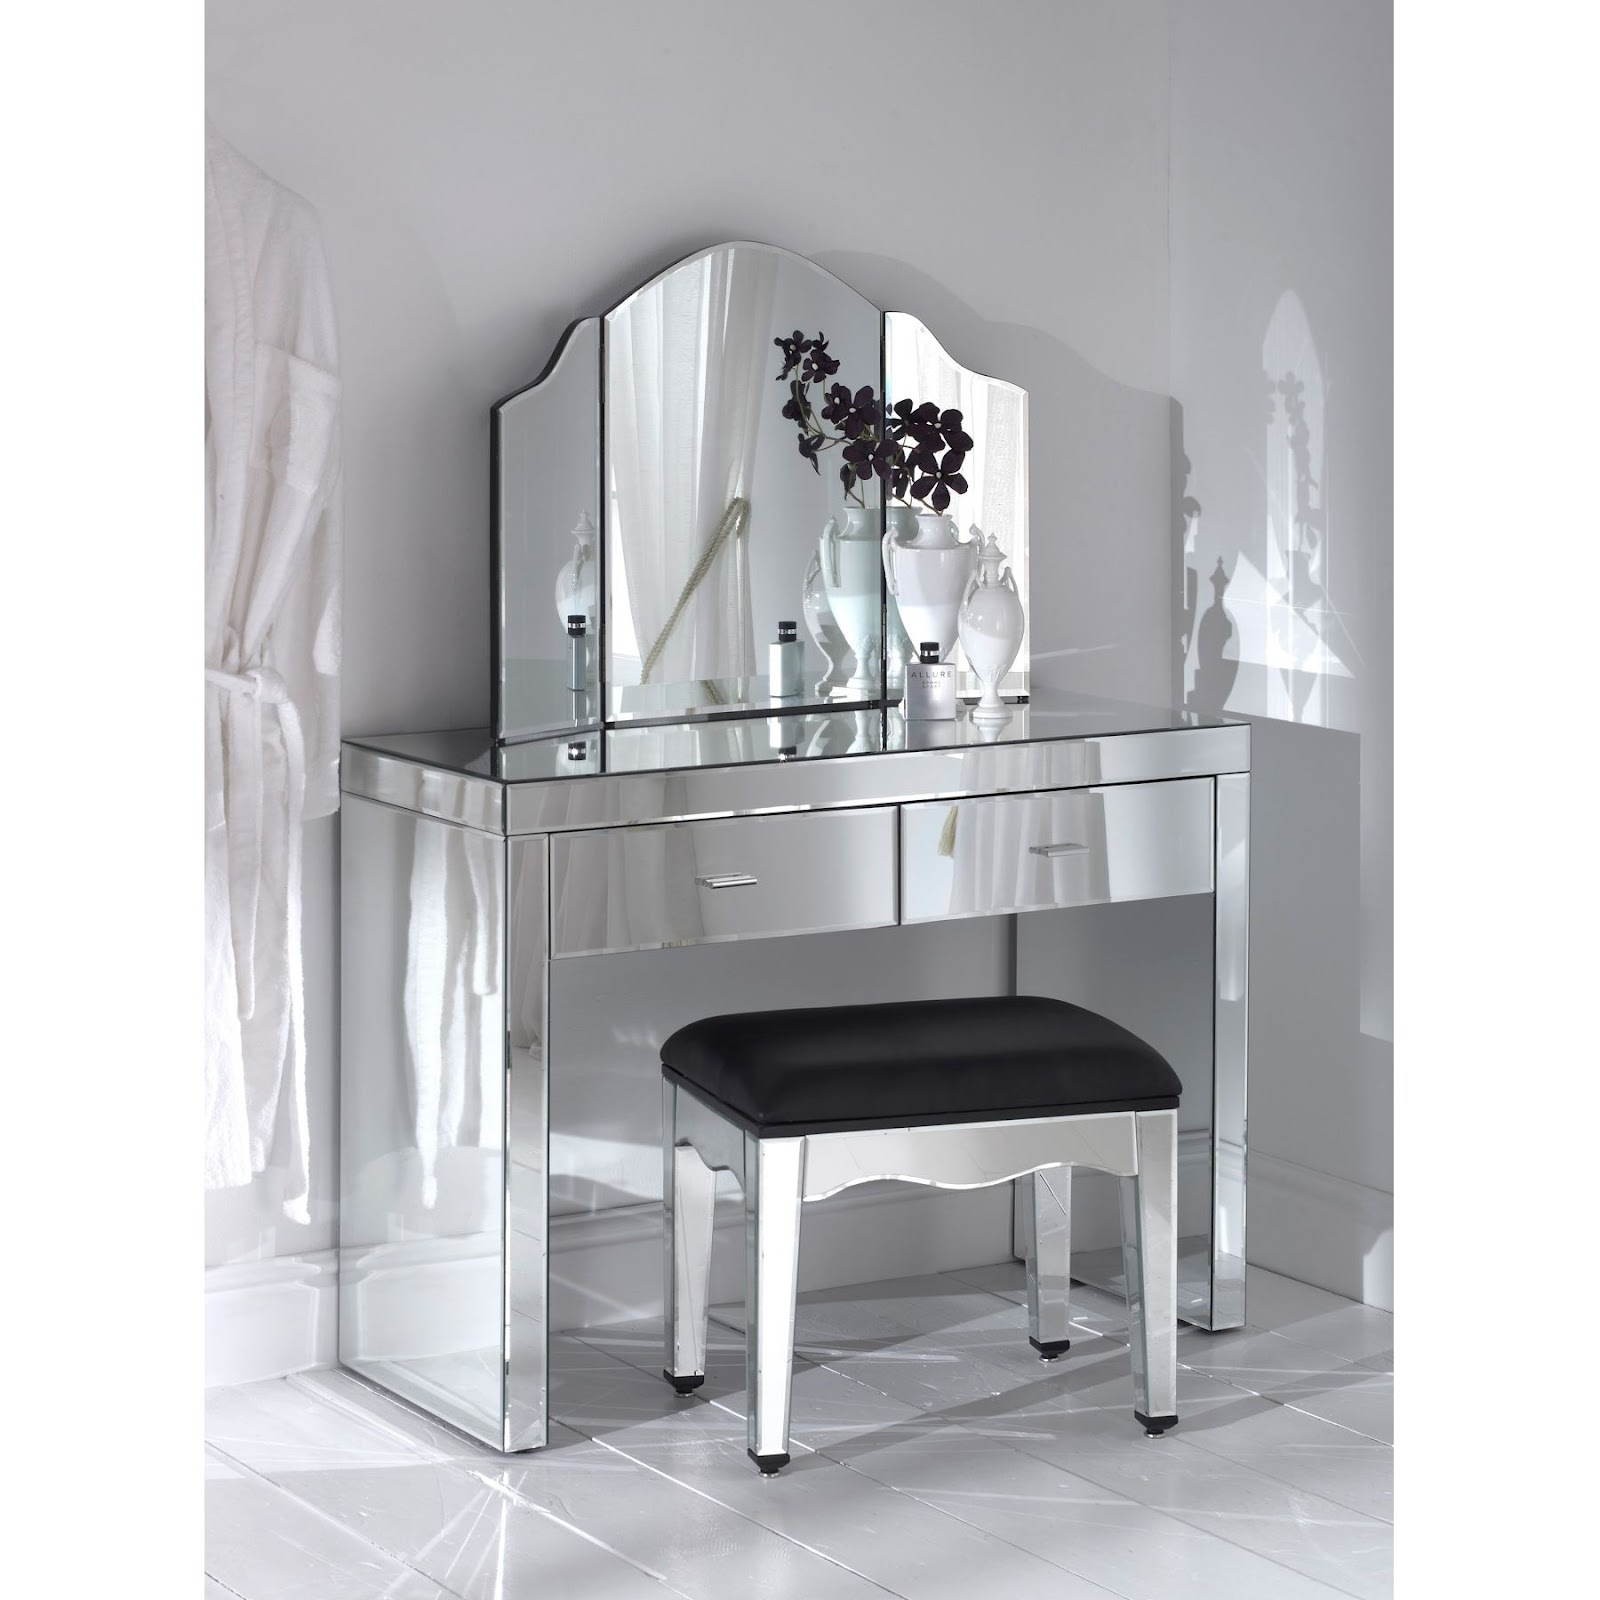 Modern dressing table furniture designs an interior design for Dressing table